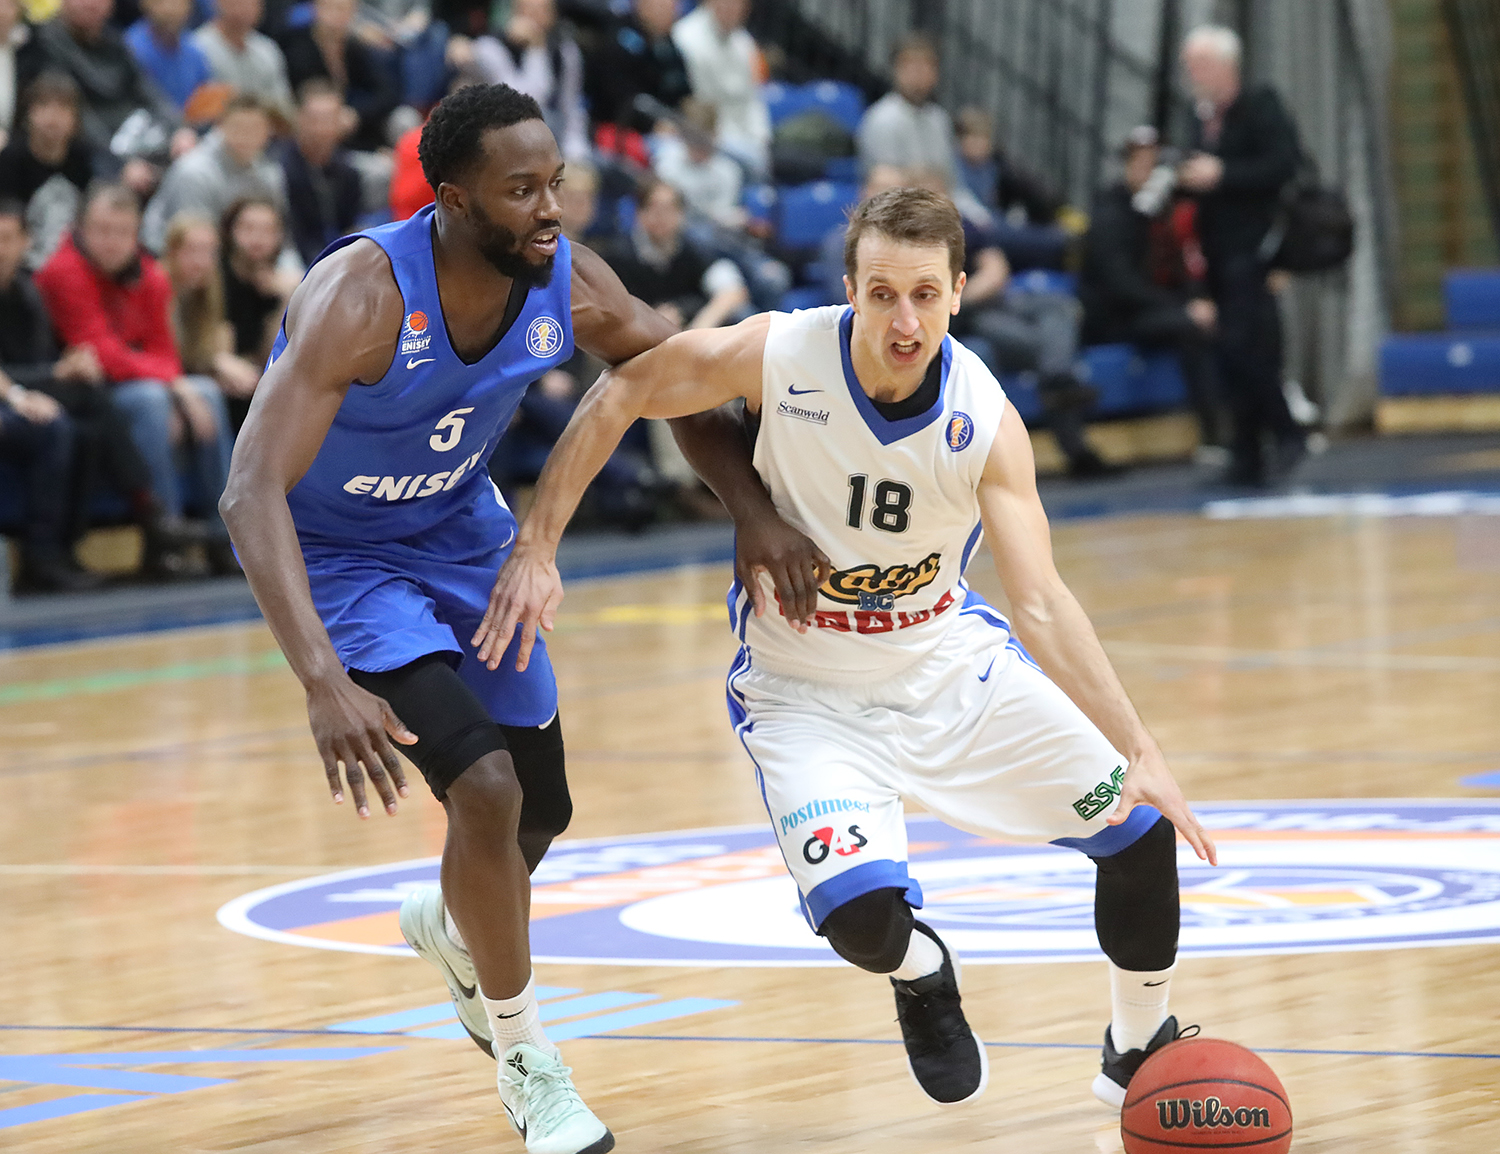 Kalev Beats Enisey In 8th-Place Showdown